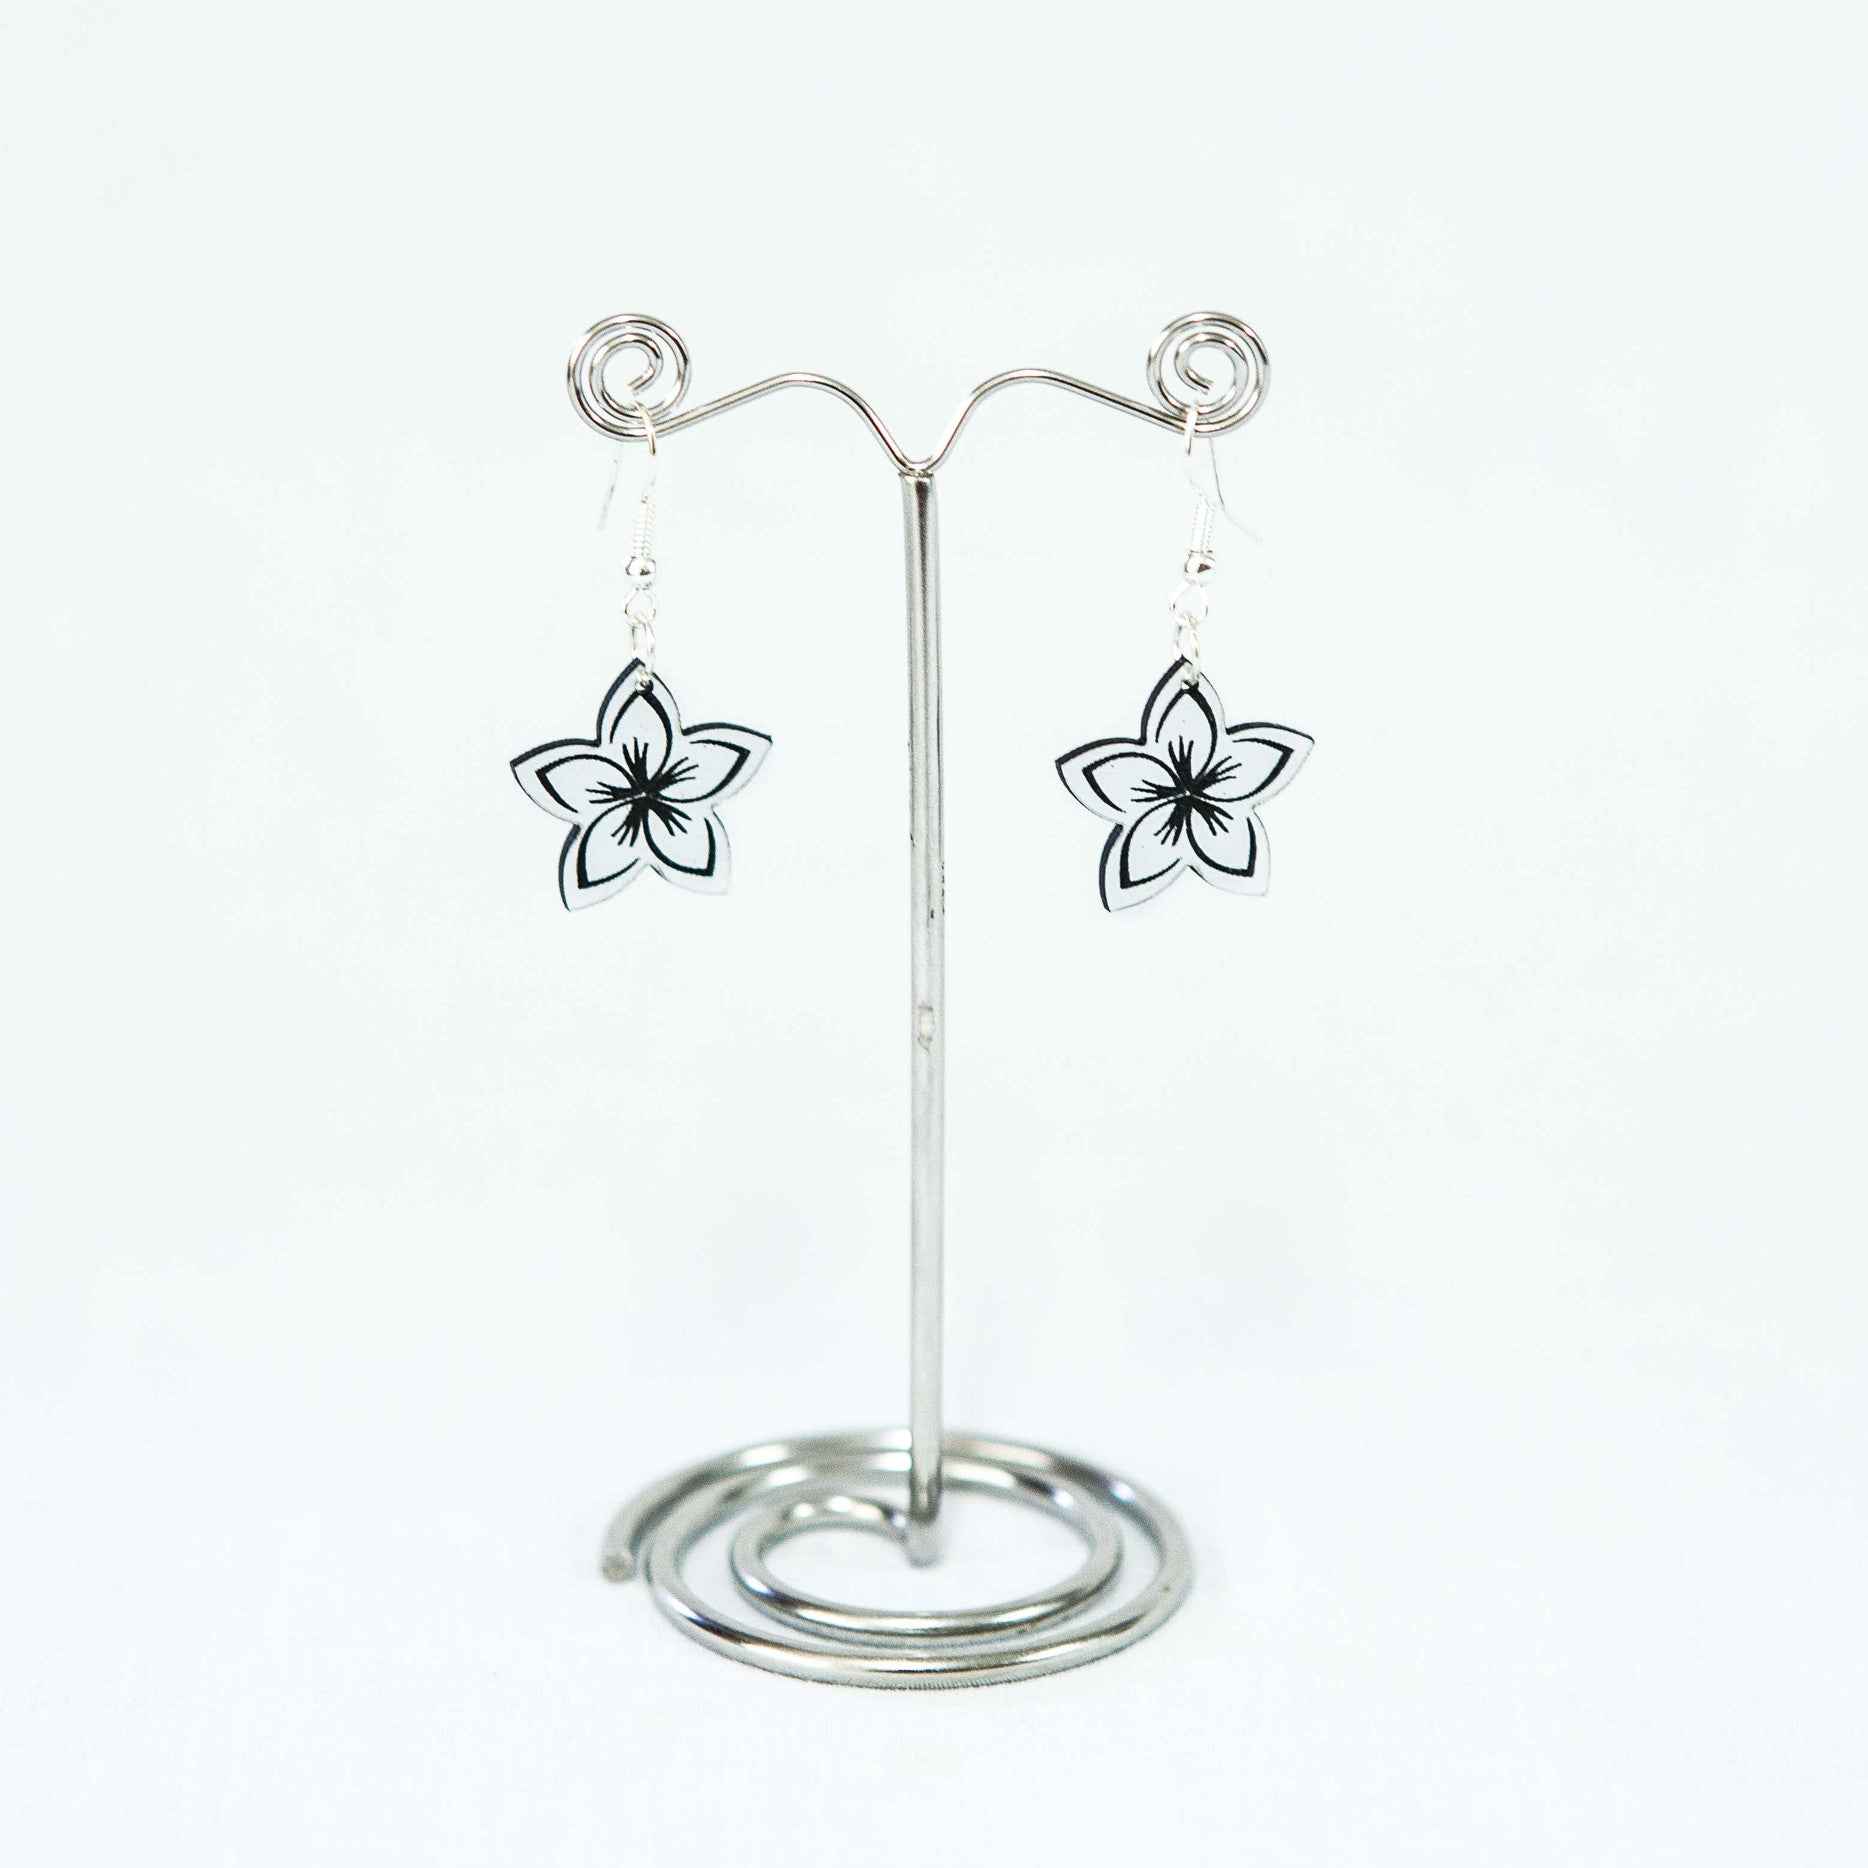 Metallic Frangipani Earrings